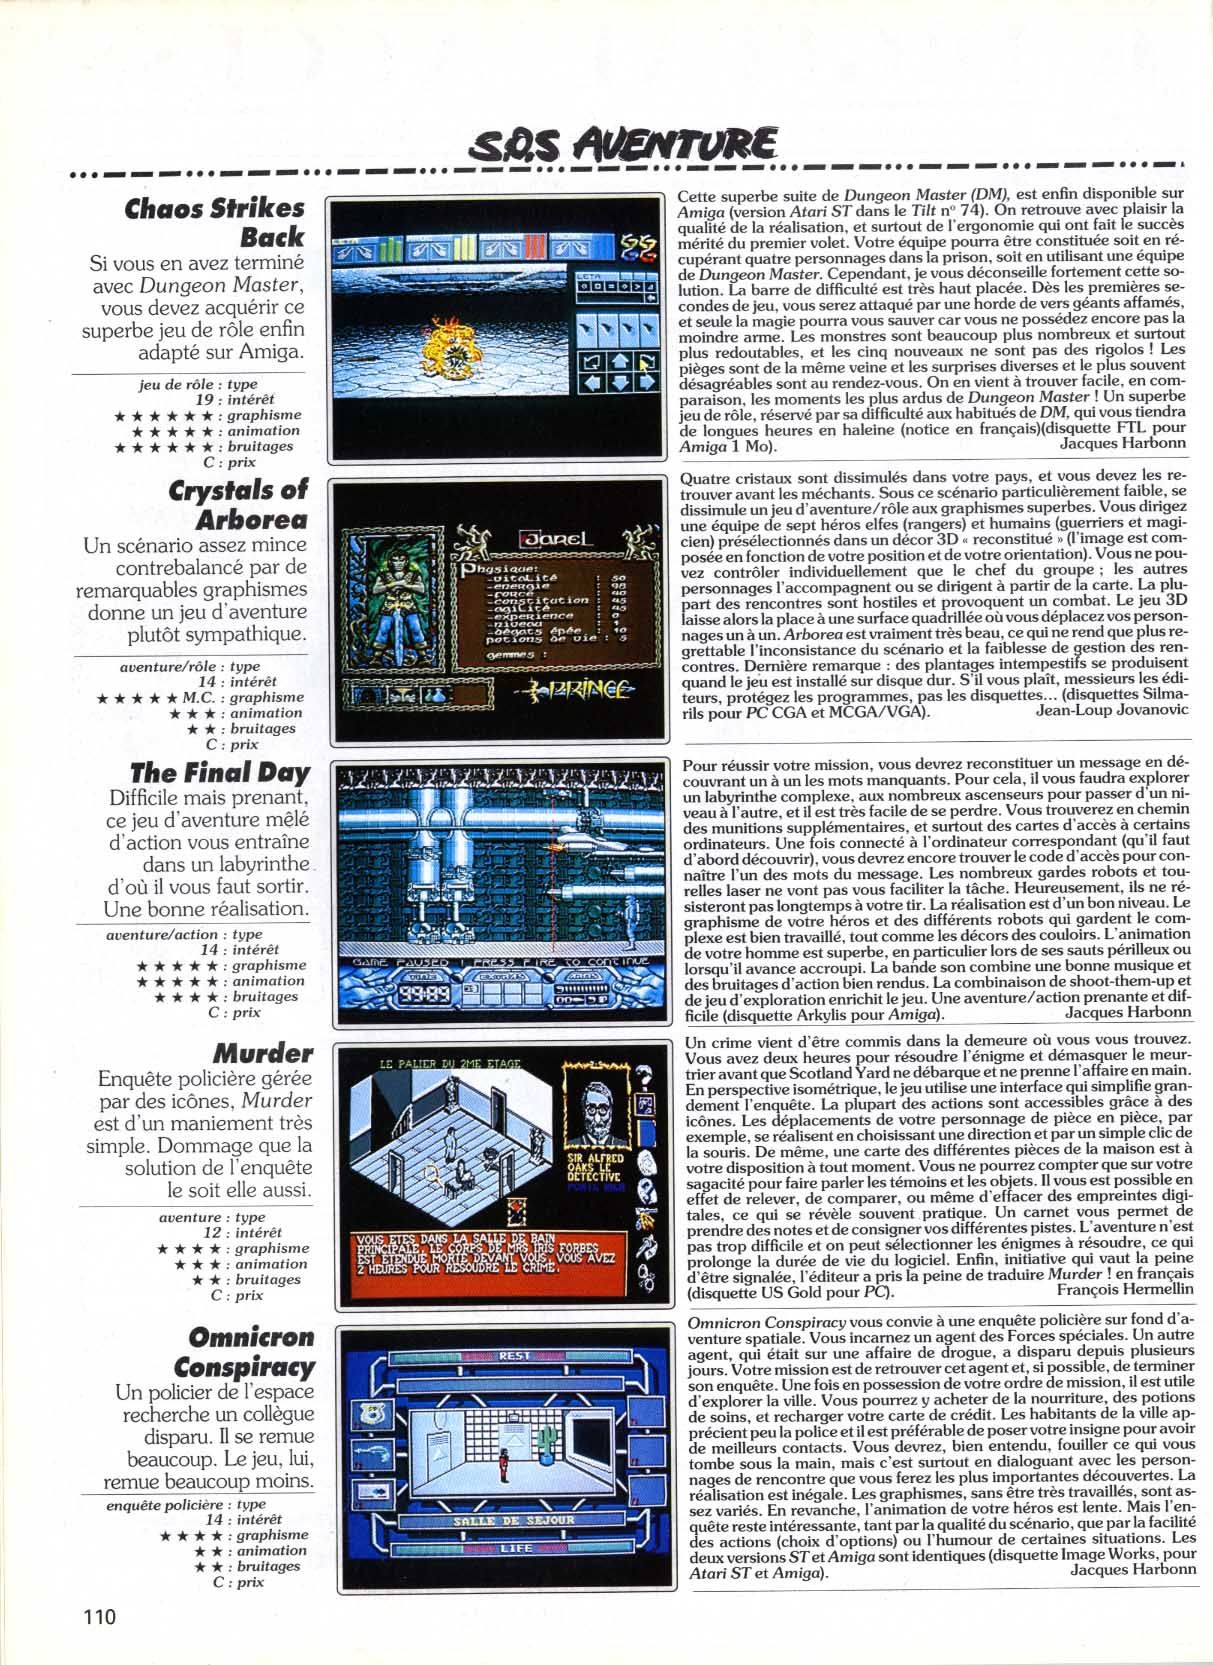 Chaos Strikes Back for Amiga Review published in French magazine 'Tilt', Issue #89, April 1991, Page 110